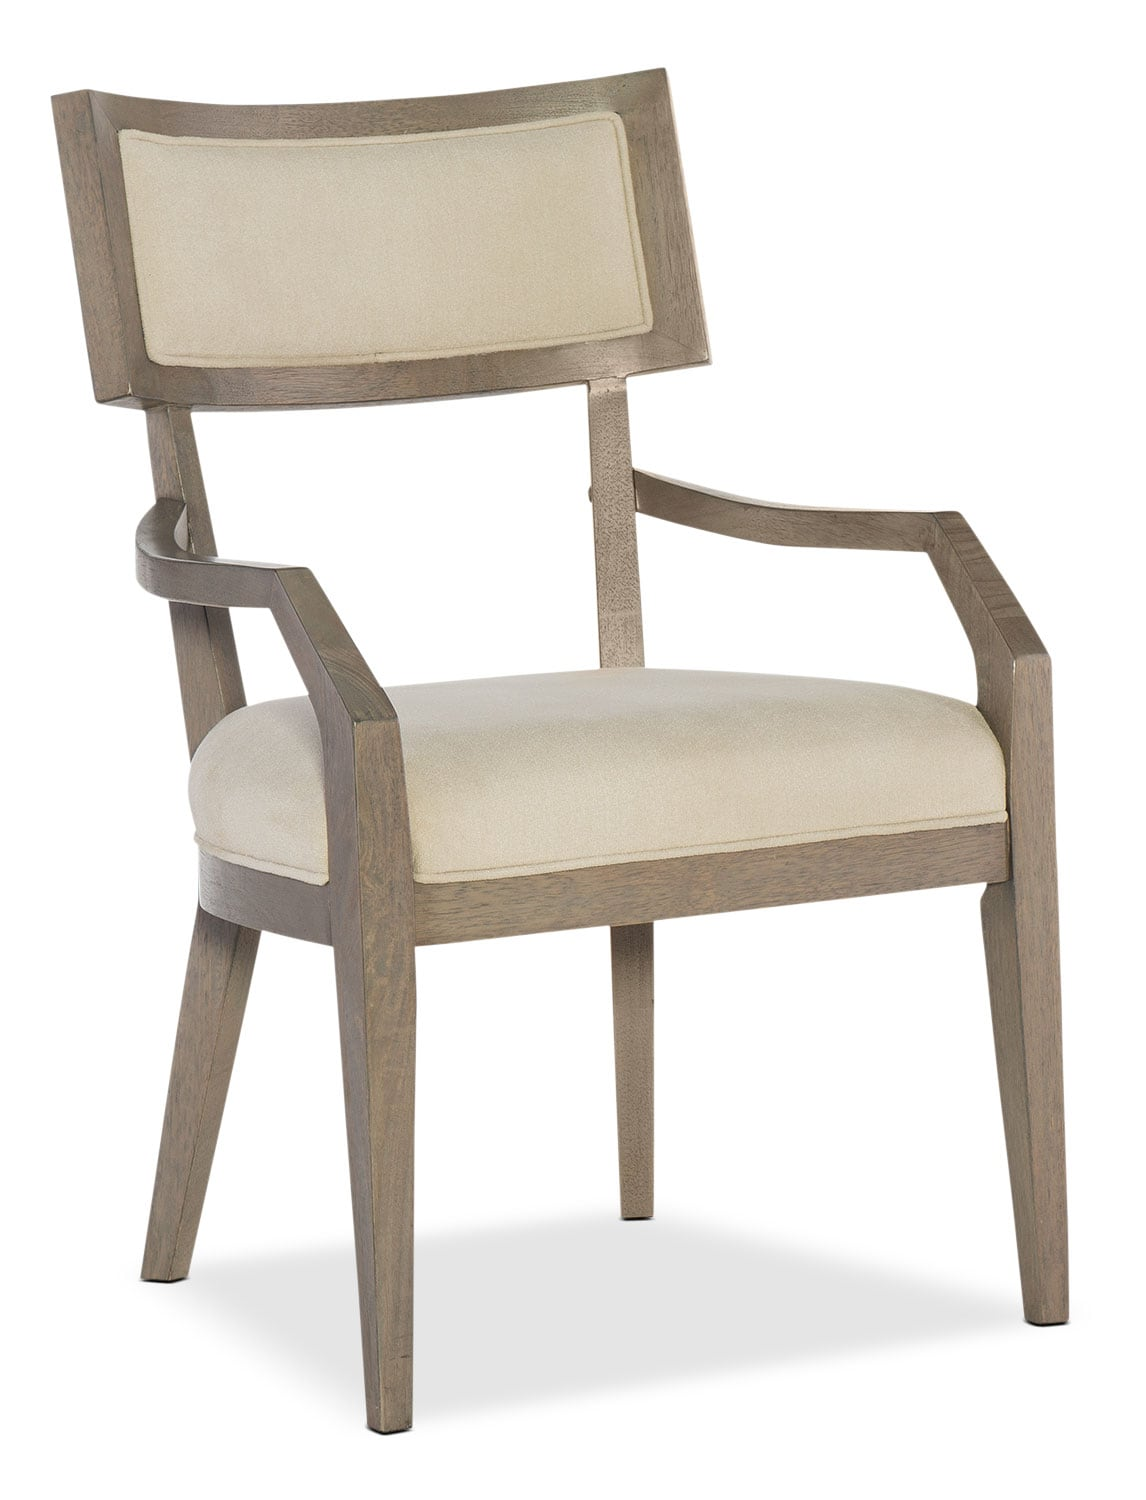 Rachael Ray Highline Arm Chair - Greige